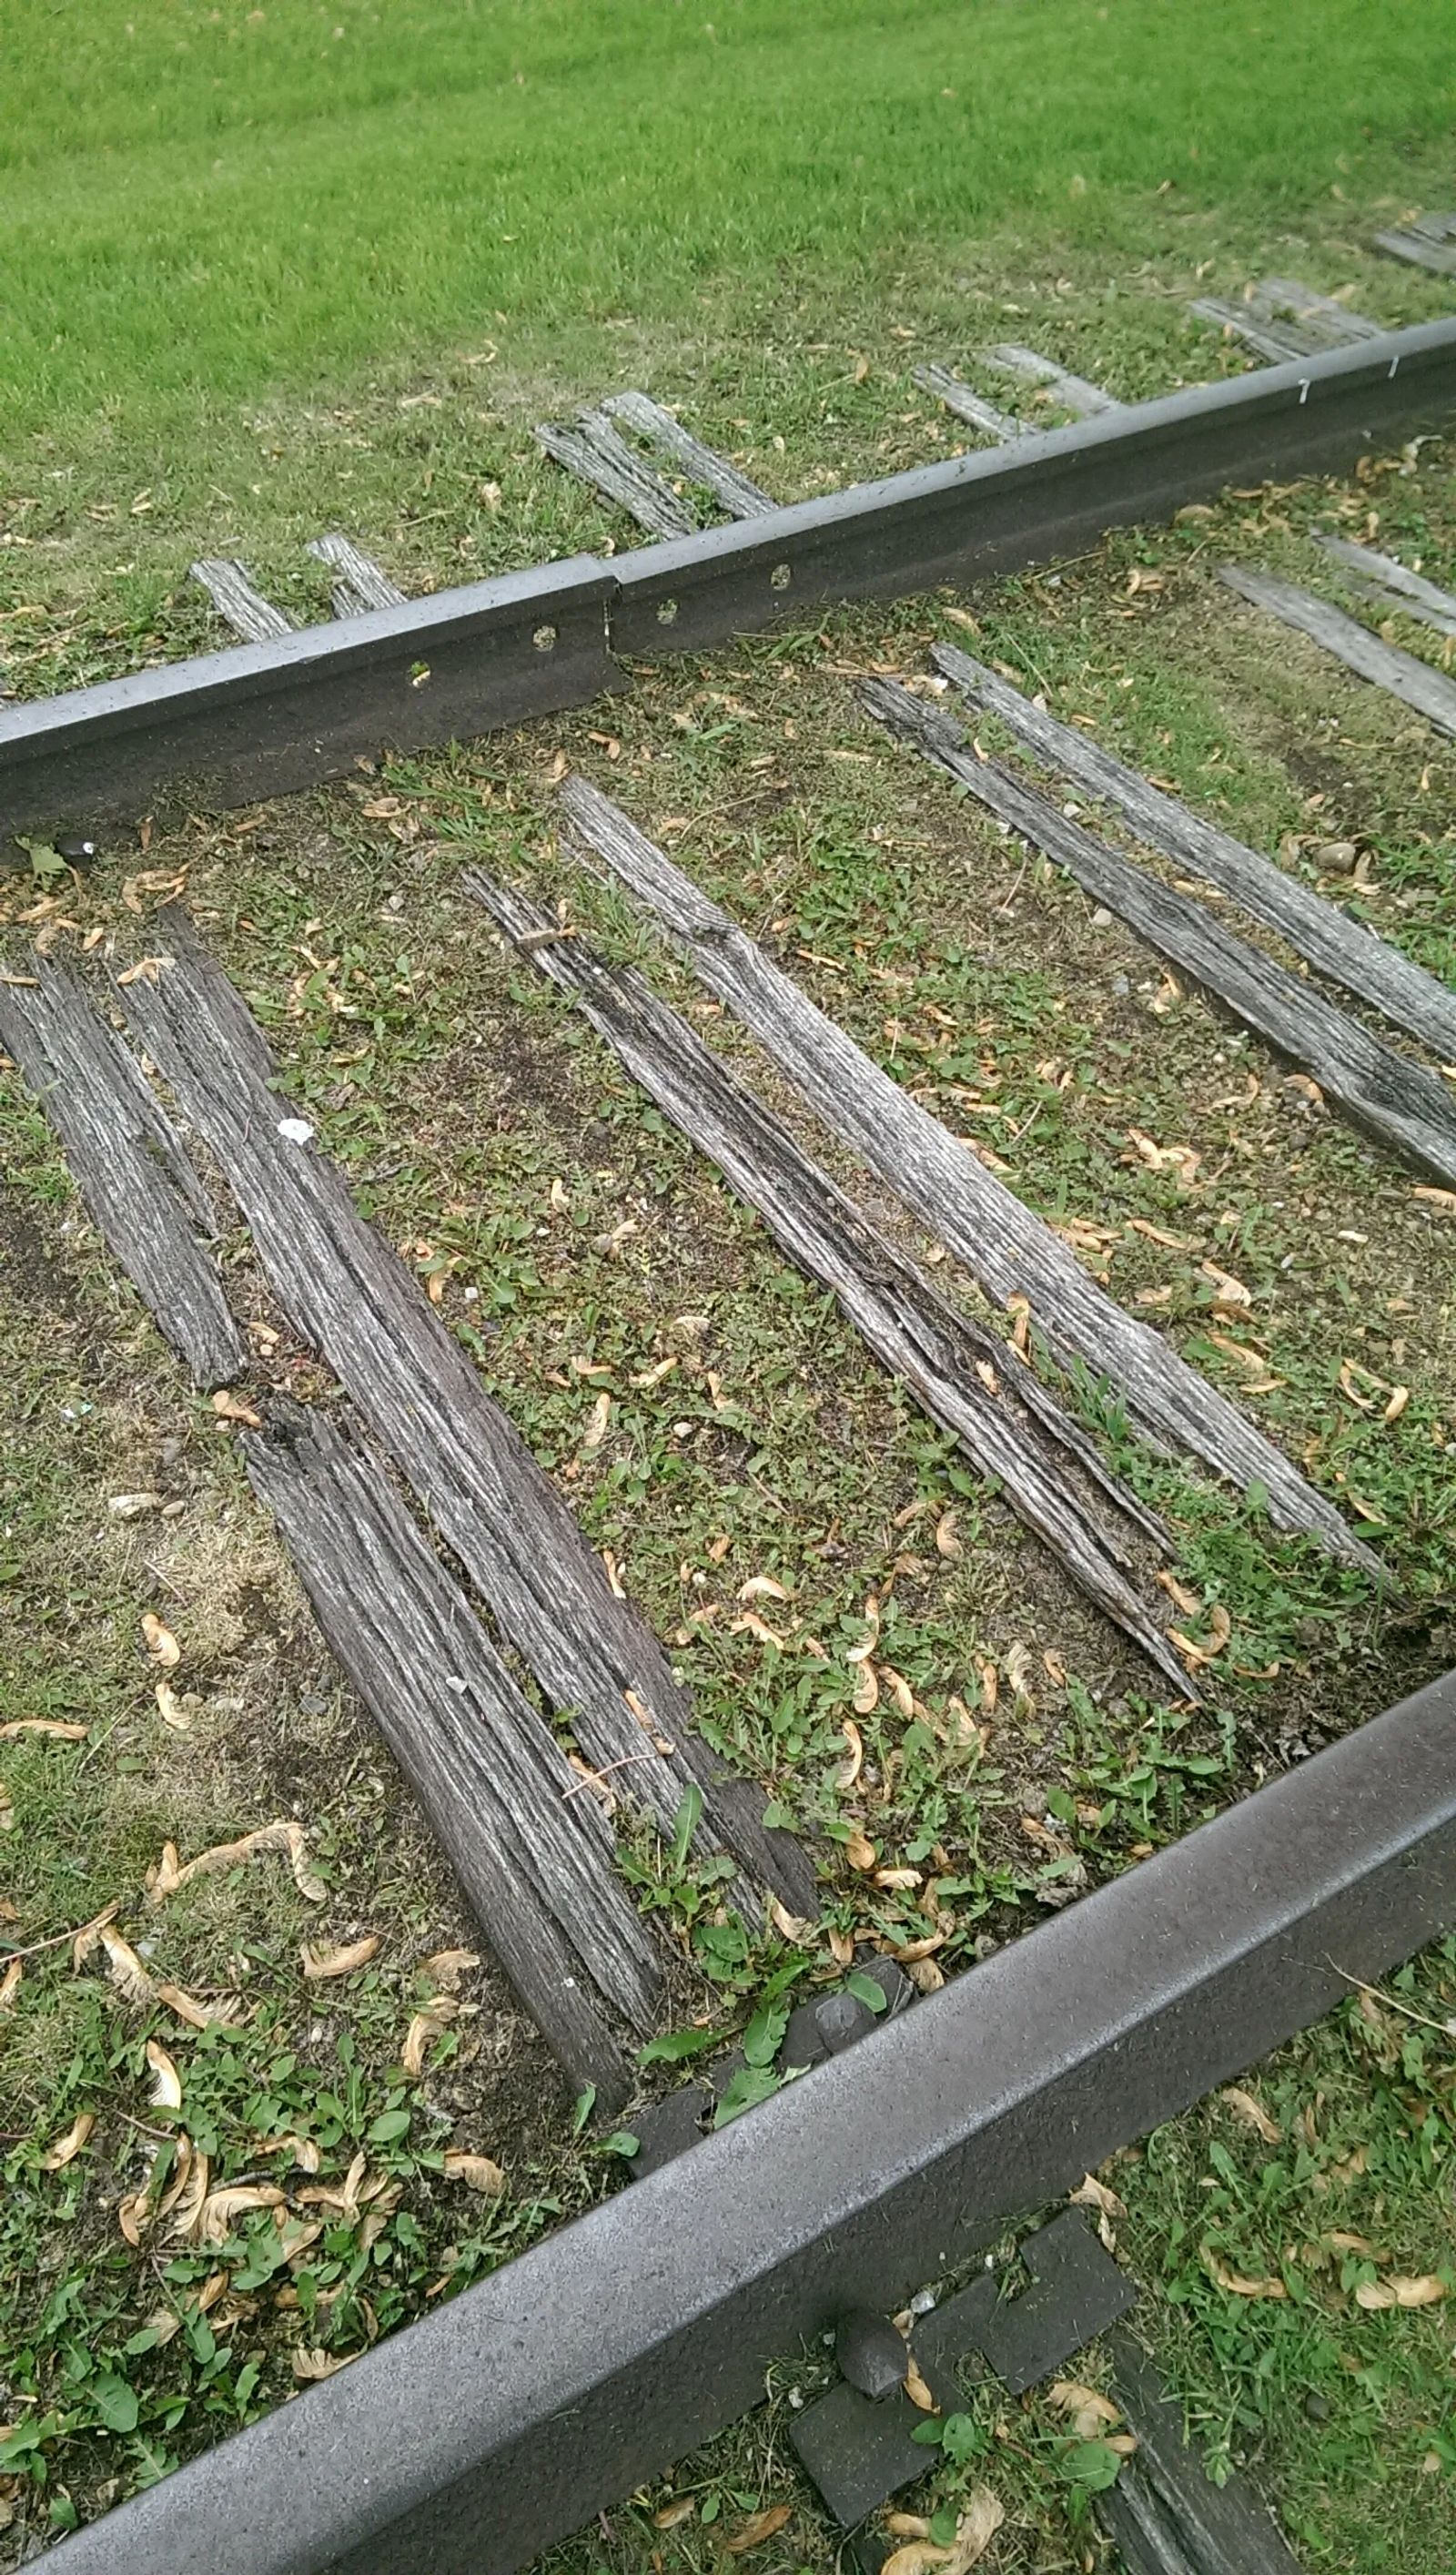 Photo of The actual rails Jesse James loosened to derail a train near Adair, Iowa